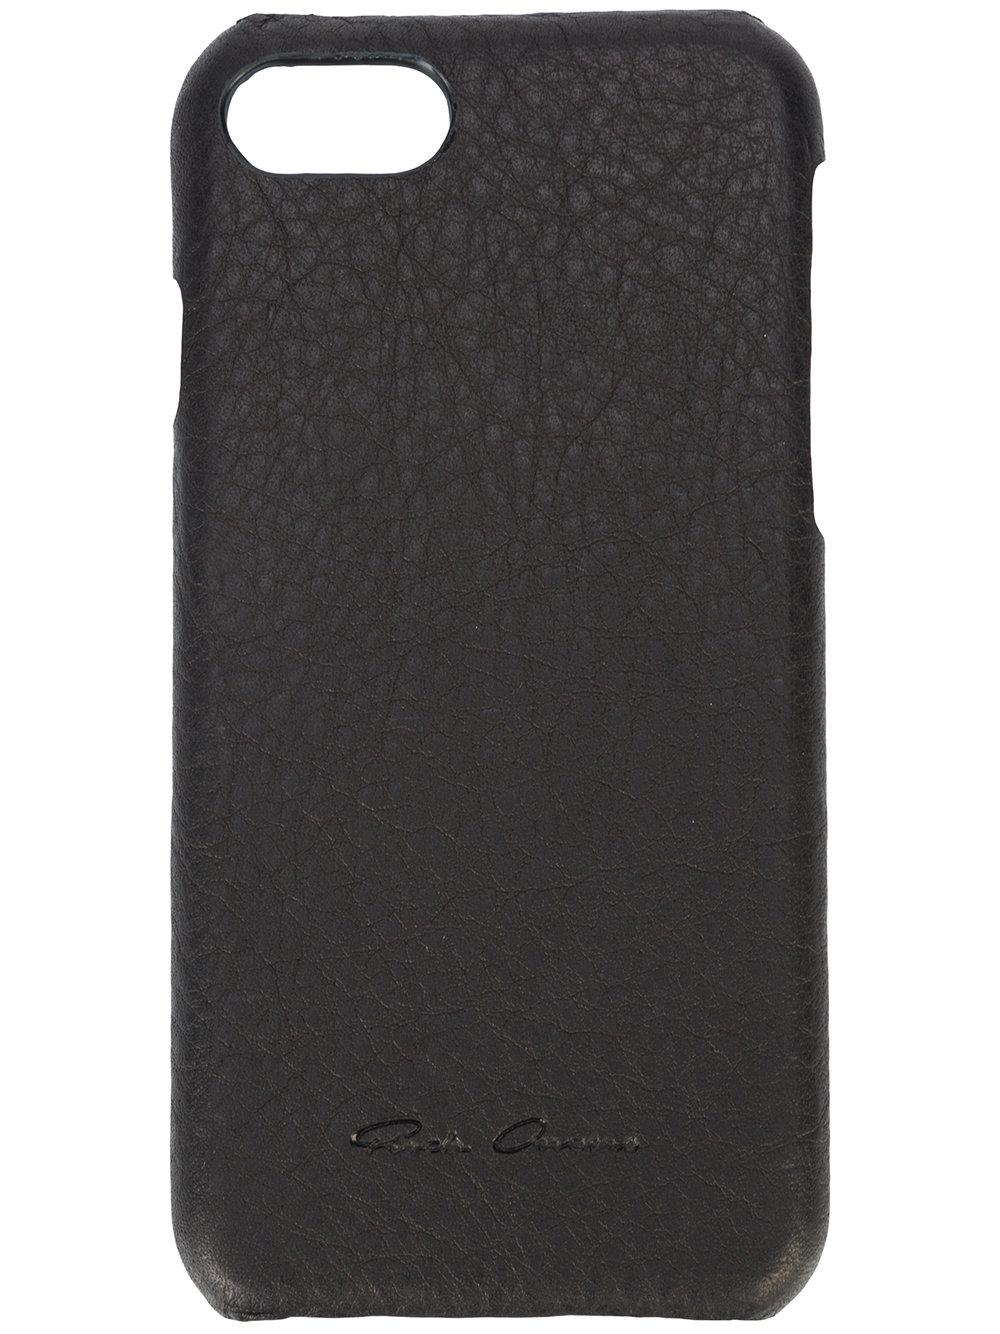 Rick Owens Leather Logo Iphone Case in Black - Lyst